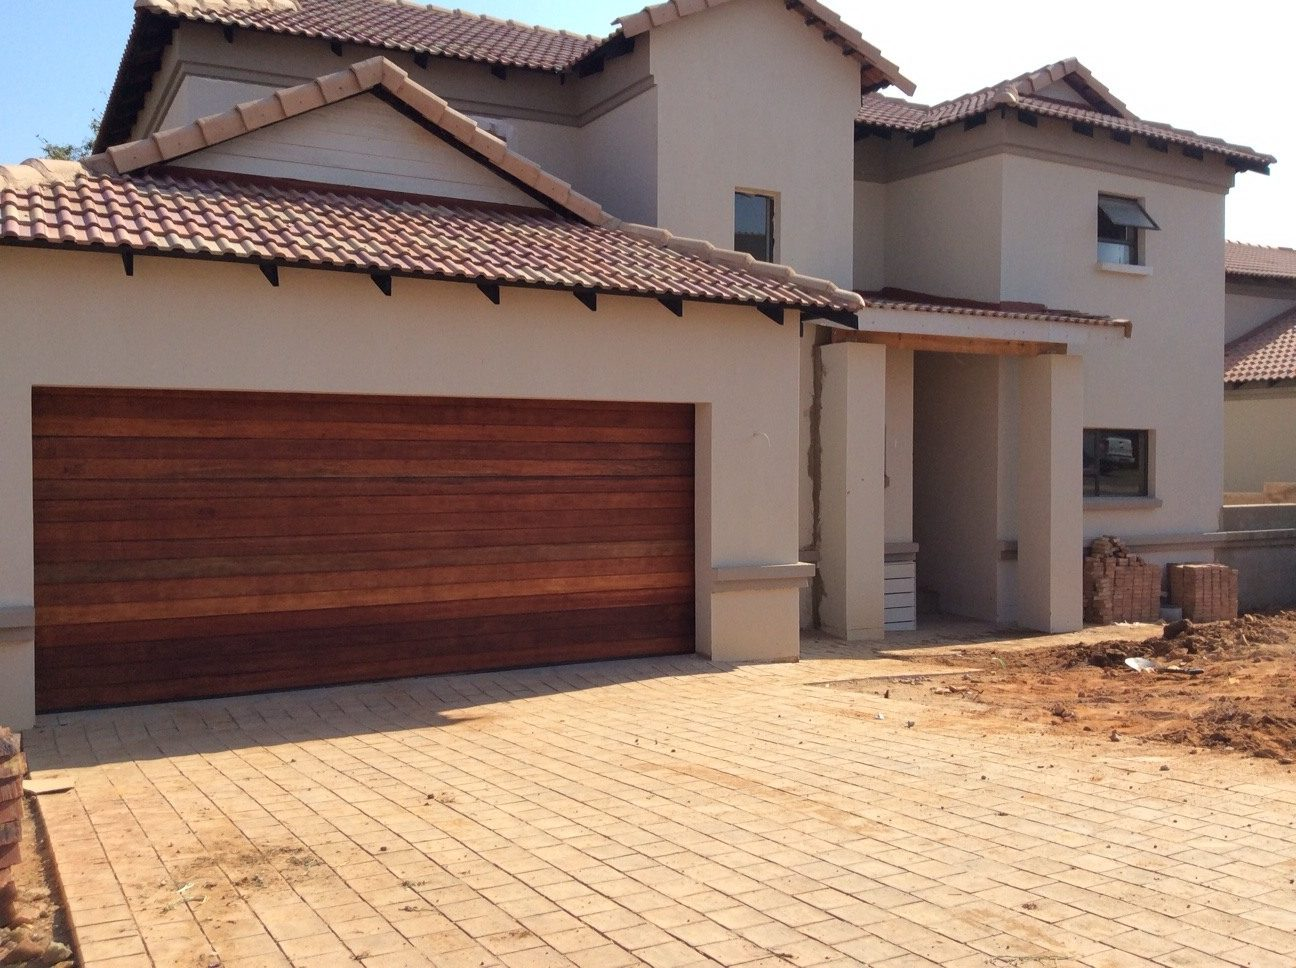 968 #0869C3 Wooden Garage Doors Pretoria – Installations Repairs & Maintenance pic Horizontal Garage Doors 37811296